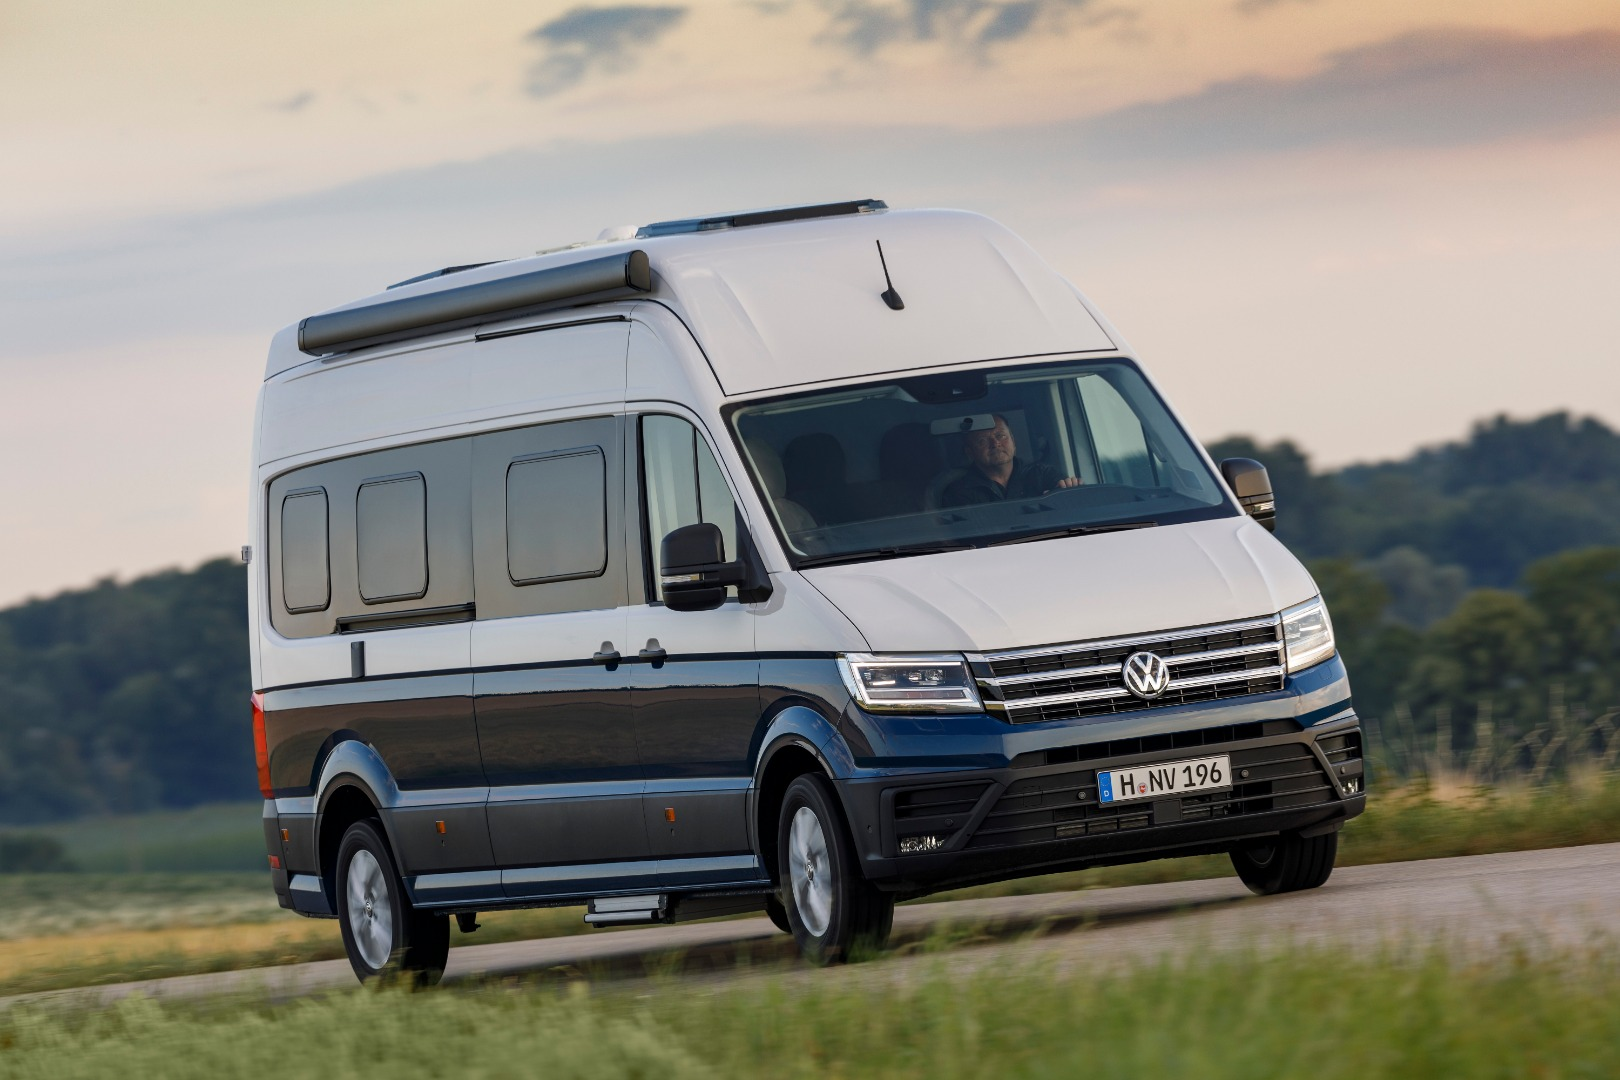 Wondrous Volkswagen Prices The Grand California Camper Van And Debuts Squirreltailoven Fun Painted Chair Ideas Images Squirreltailovenorg